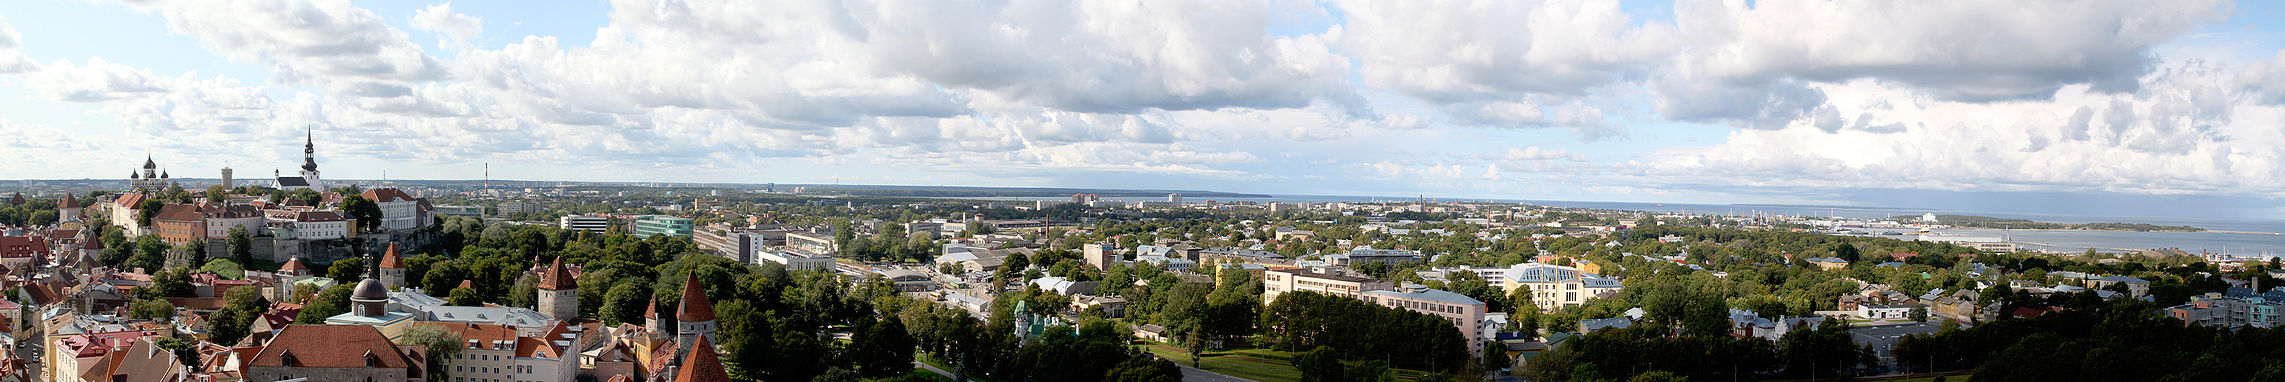 Tallinn_old_city_and_sea_view_two